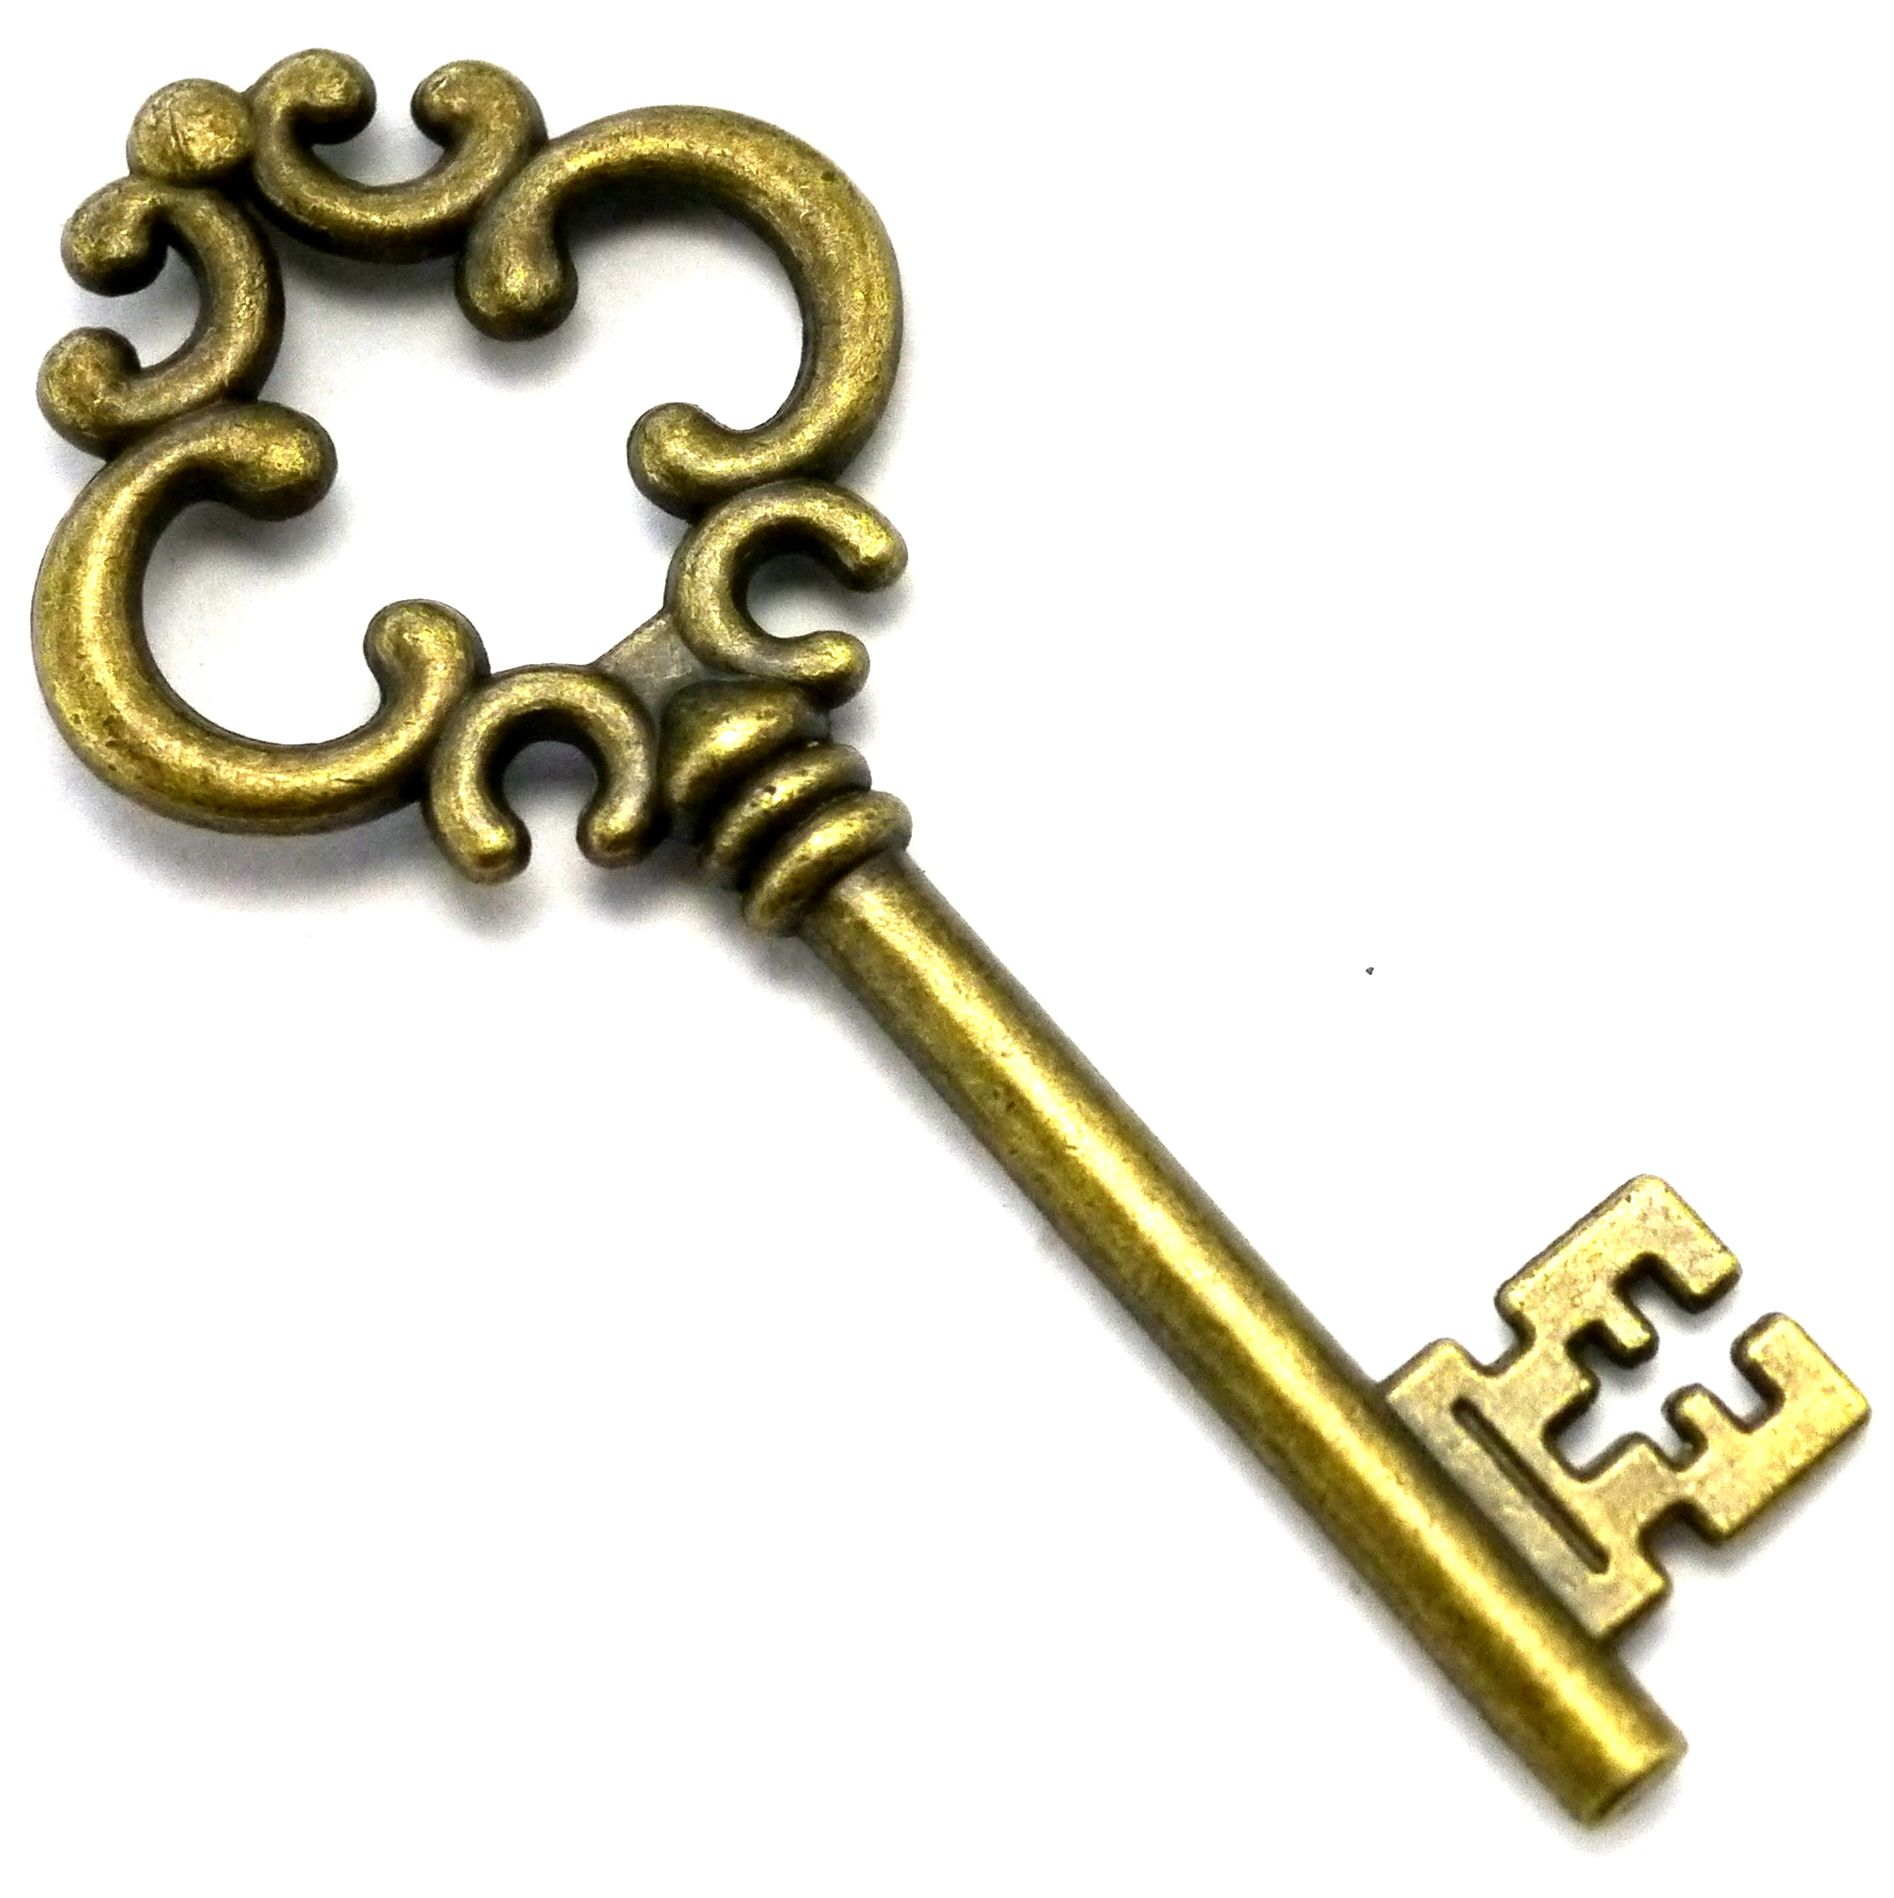 Getting the Carli key in to be able to build the iso